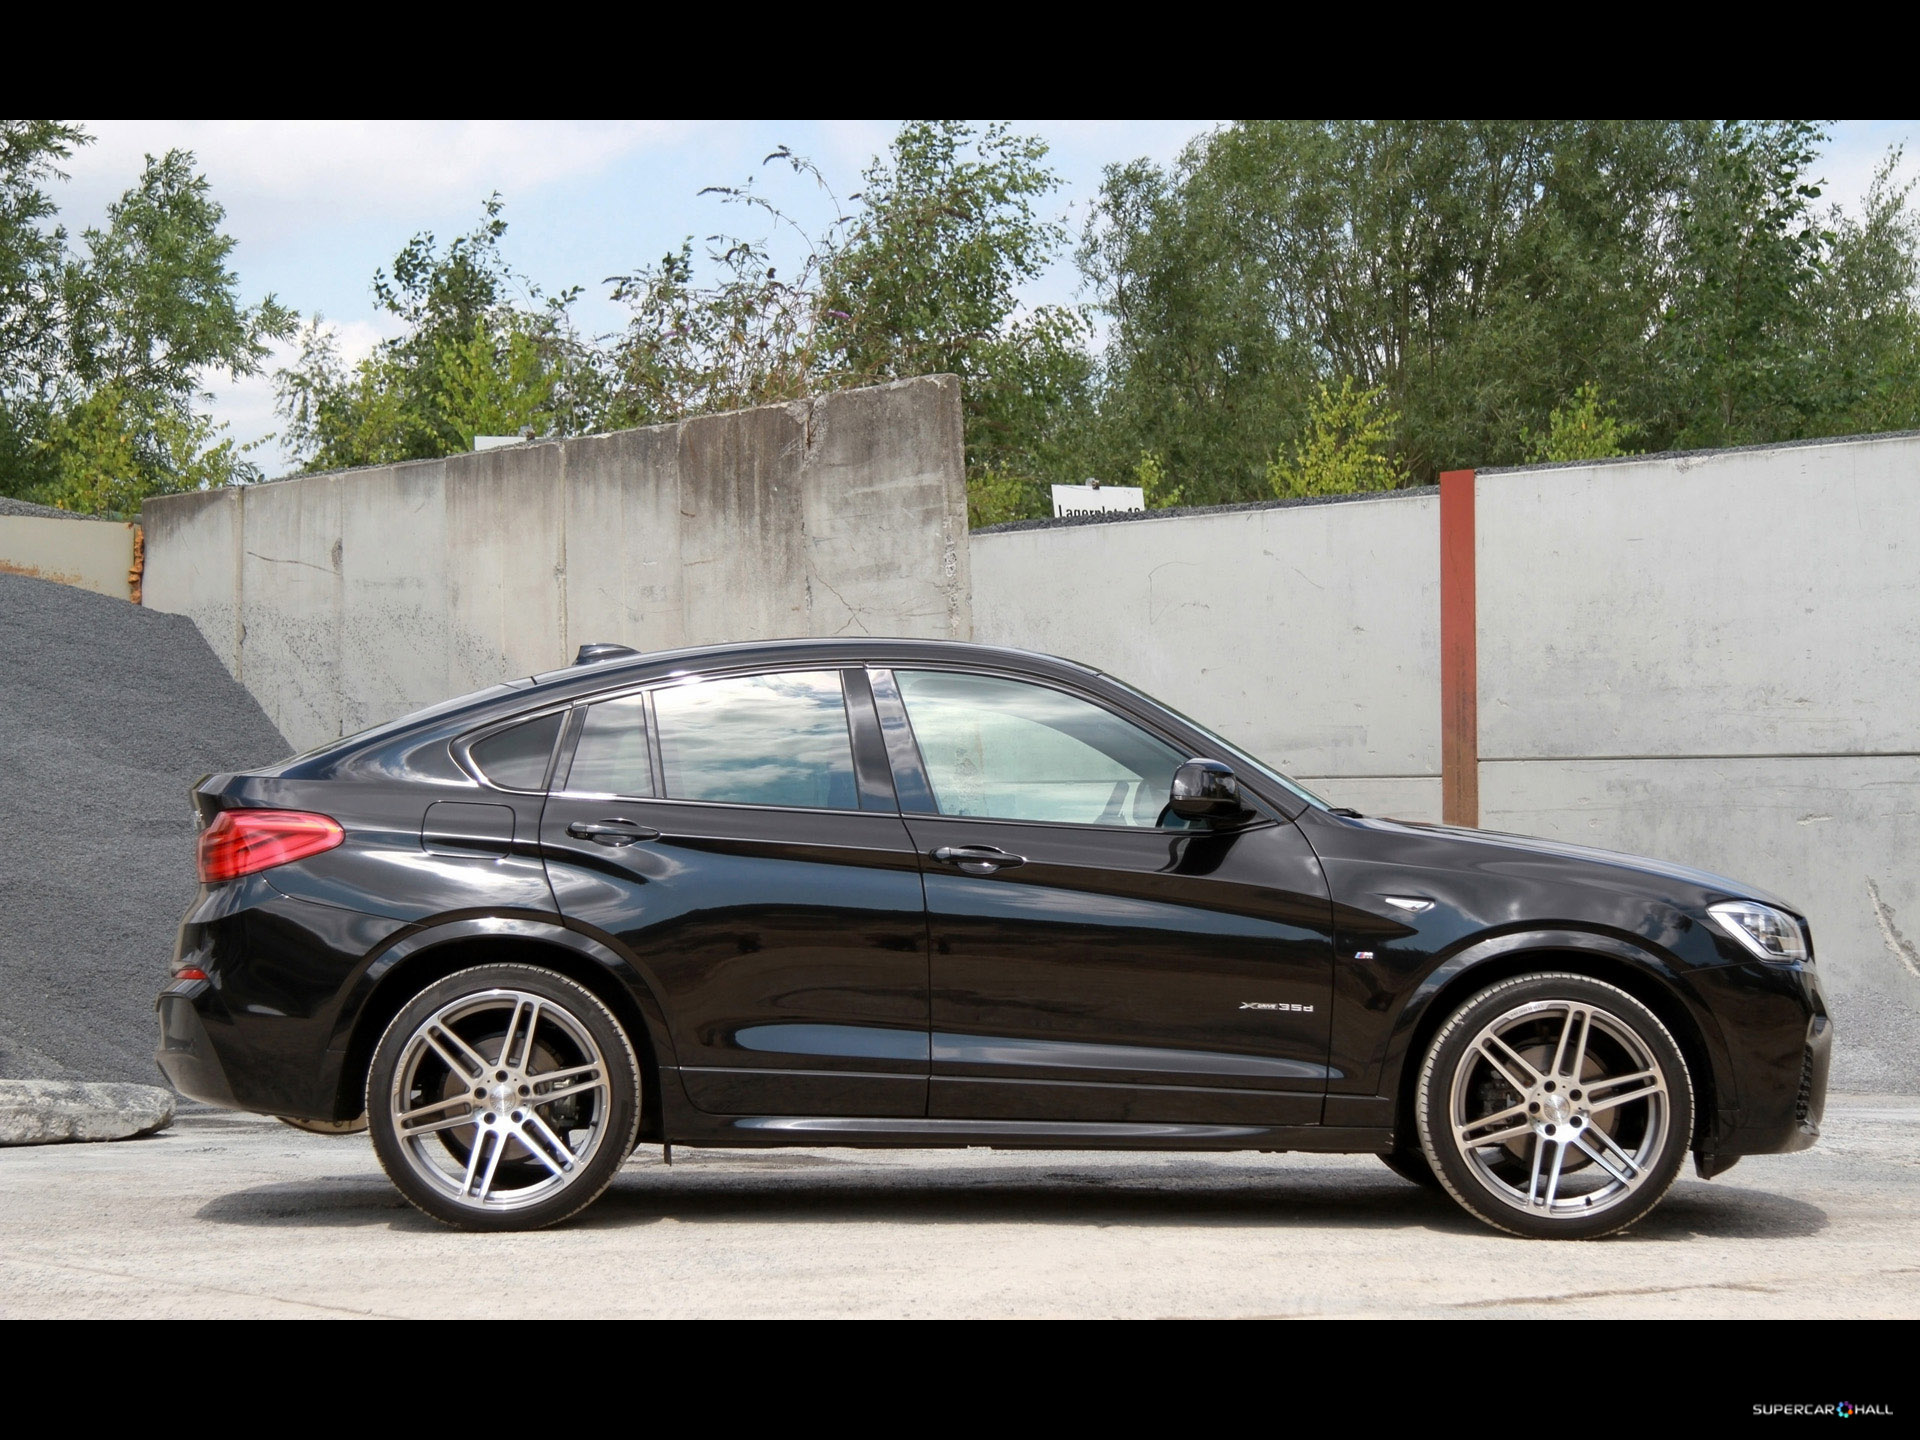 BMW X4 xDrive35d 2014 photo - 5